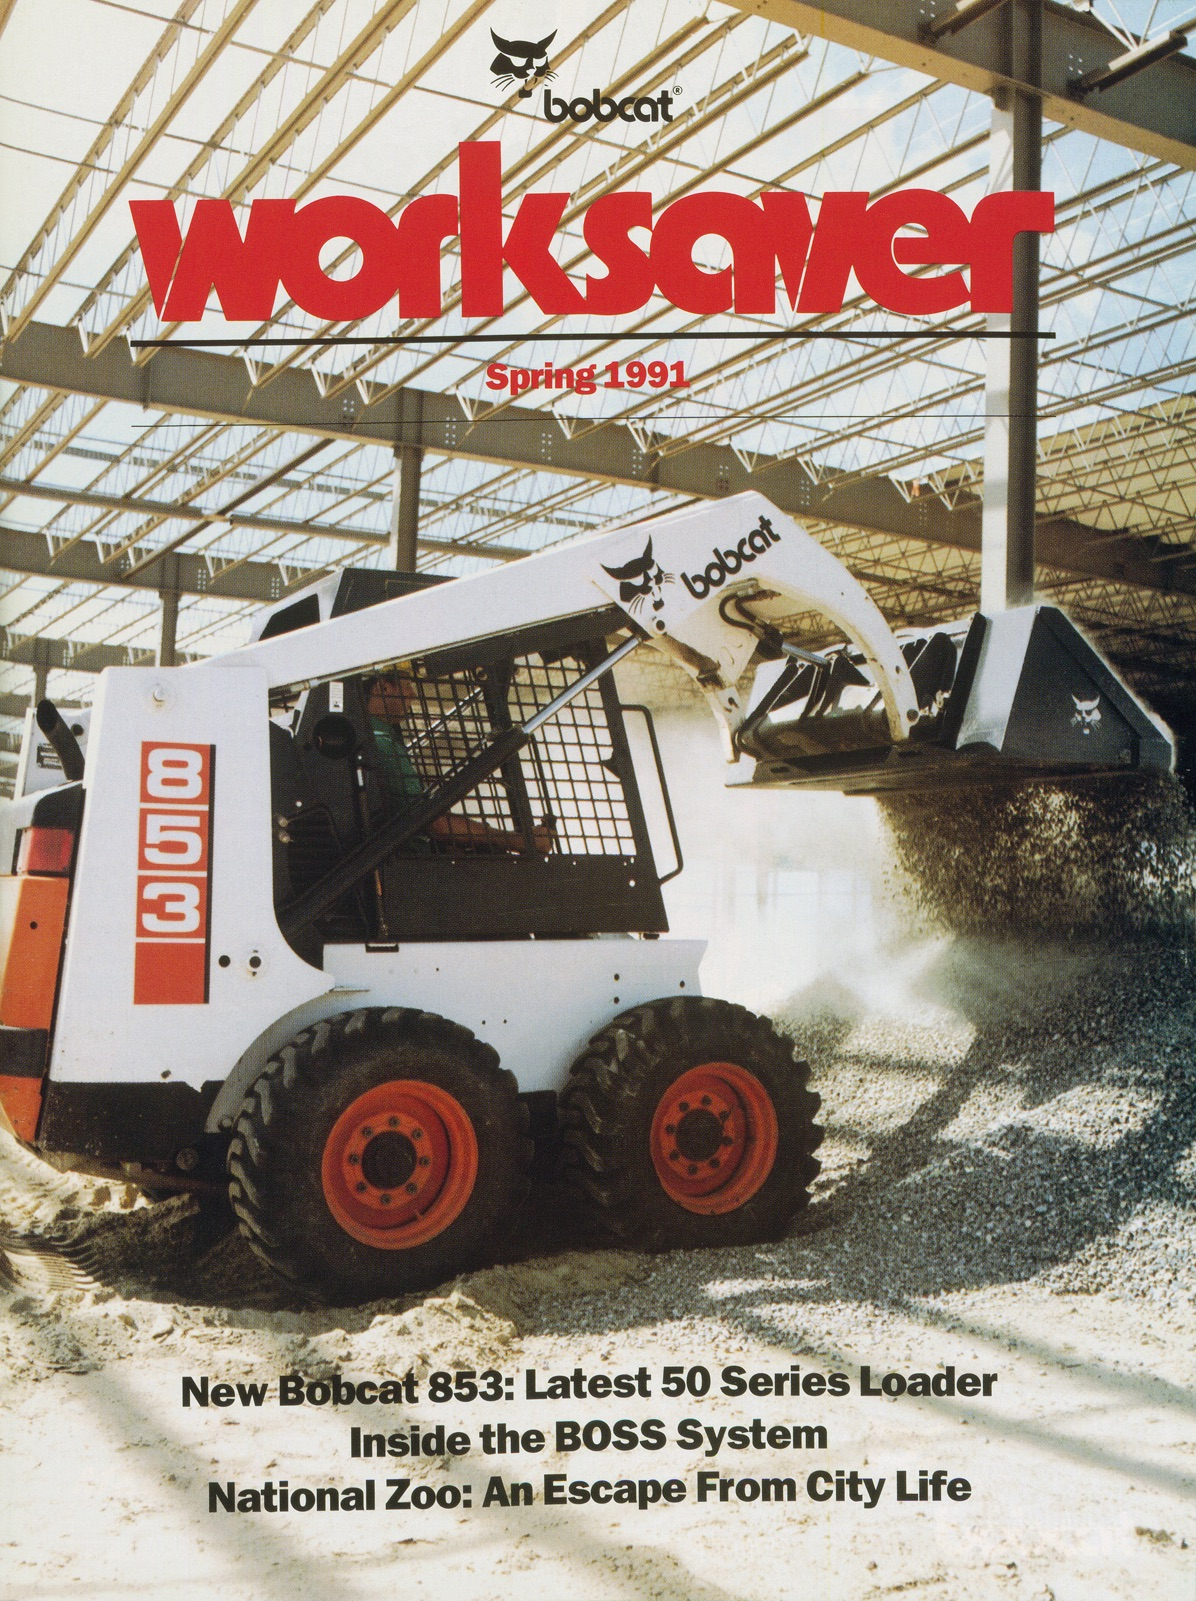 WorkSaver Launches 853, 1991